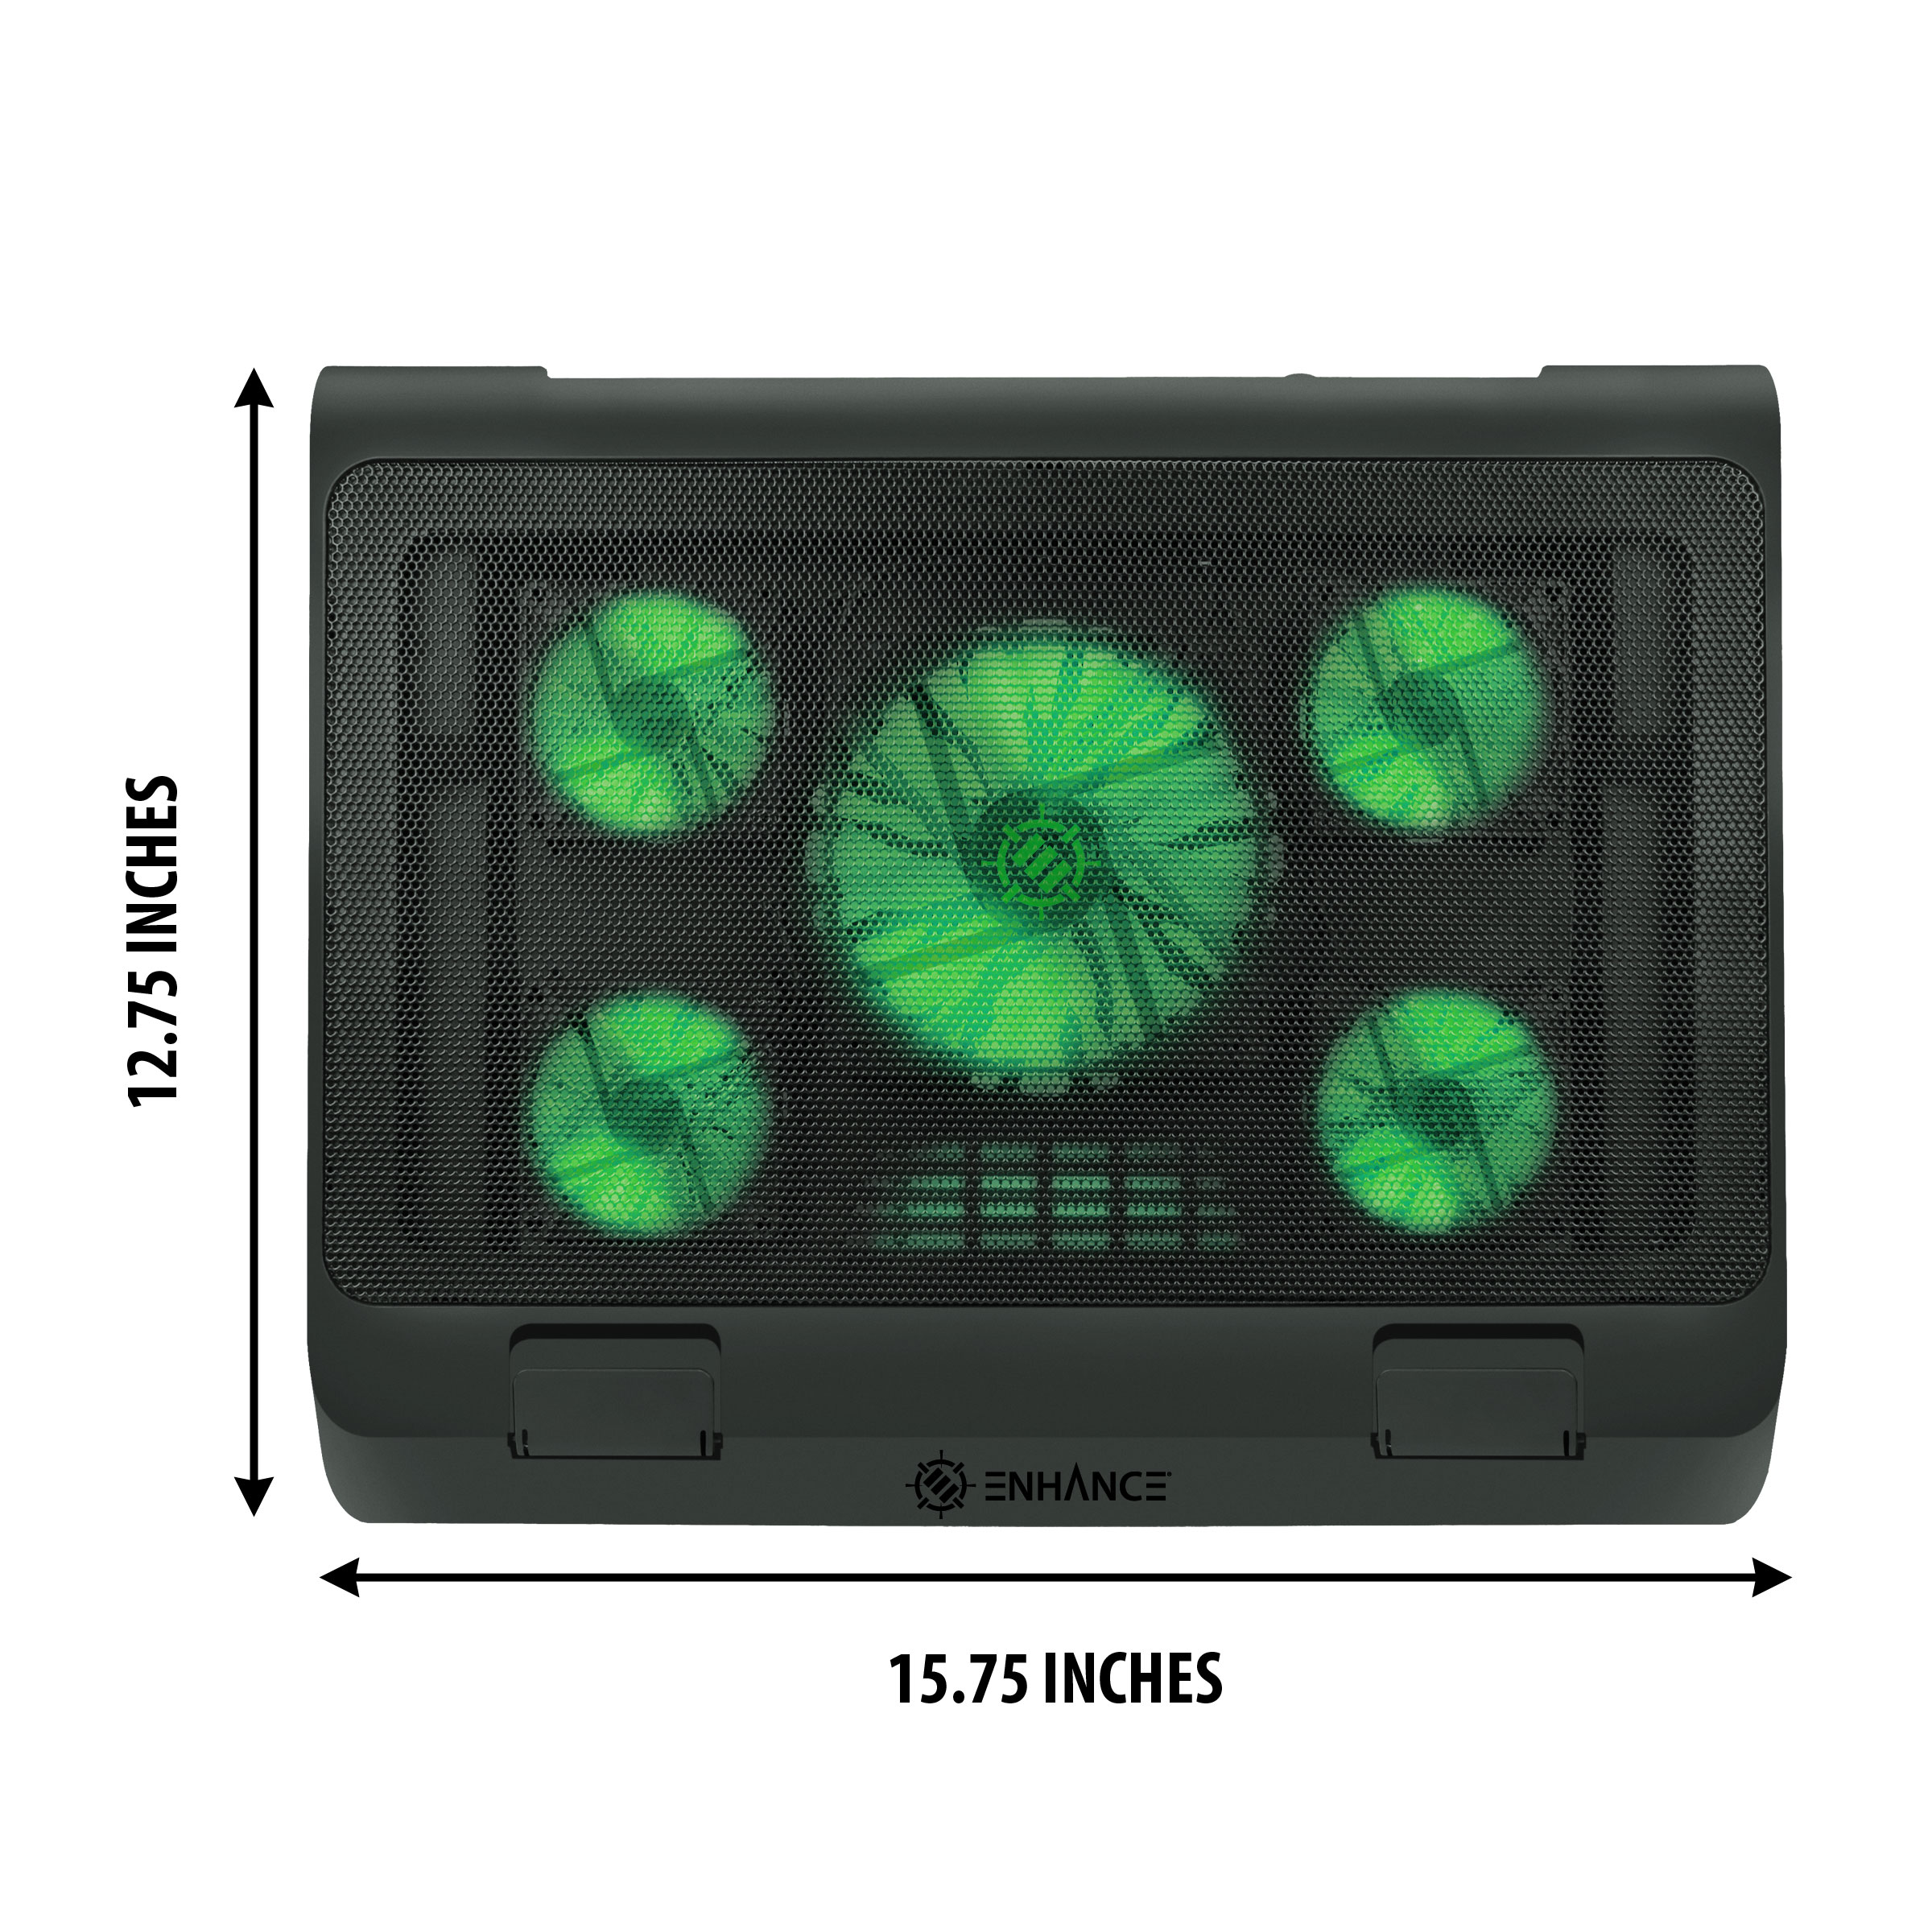 ENHANCE GX-C1 Laptop Cooling Stand (15.75? x 12.75?) with 5 LED Fans & Dual USB Ports 6